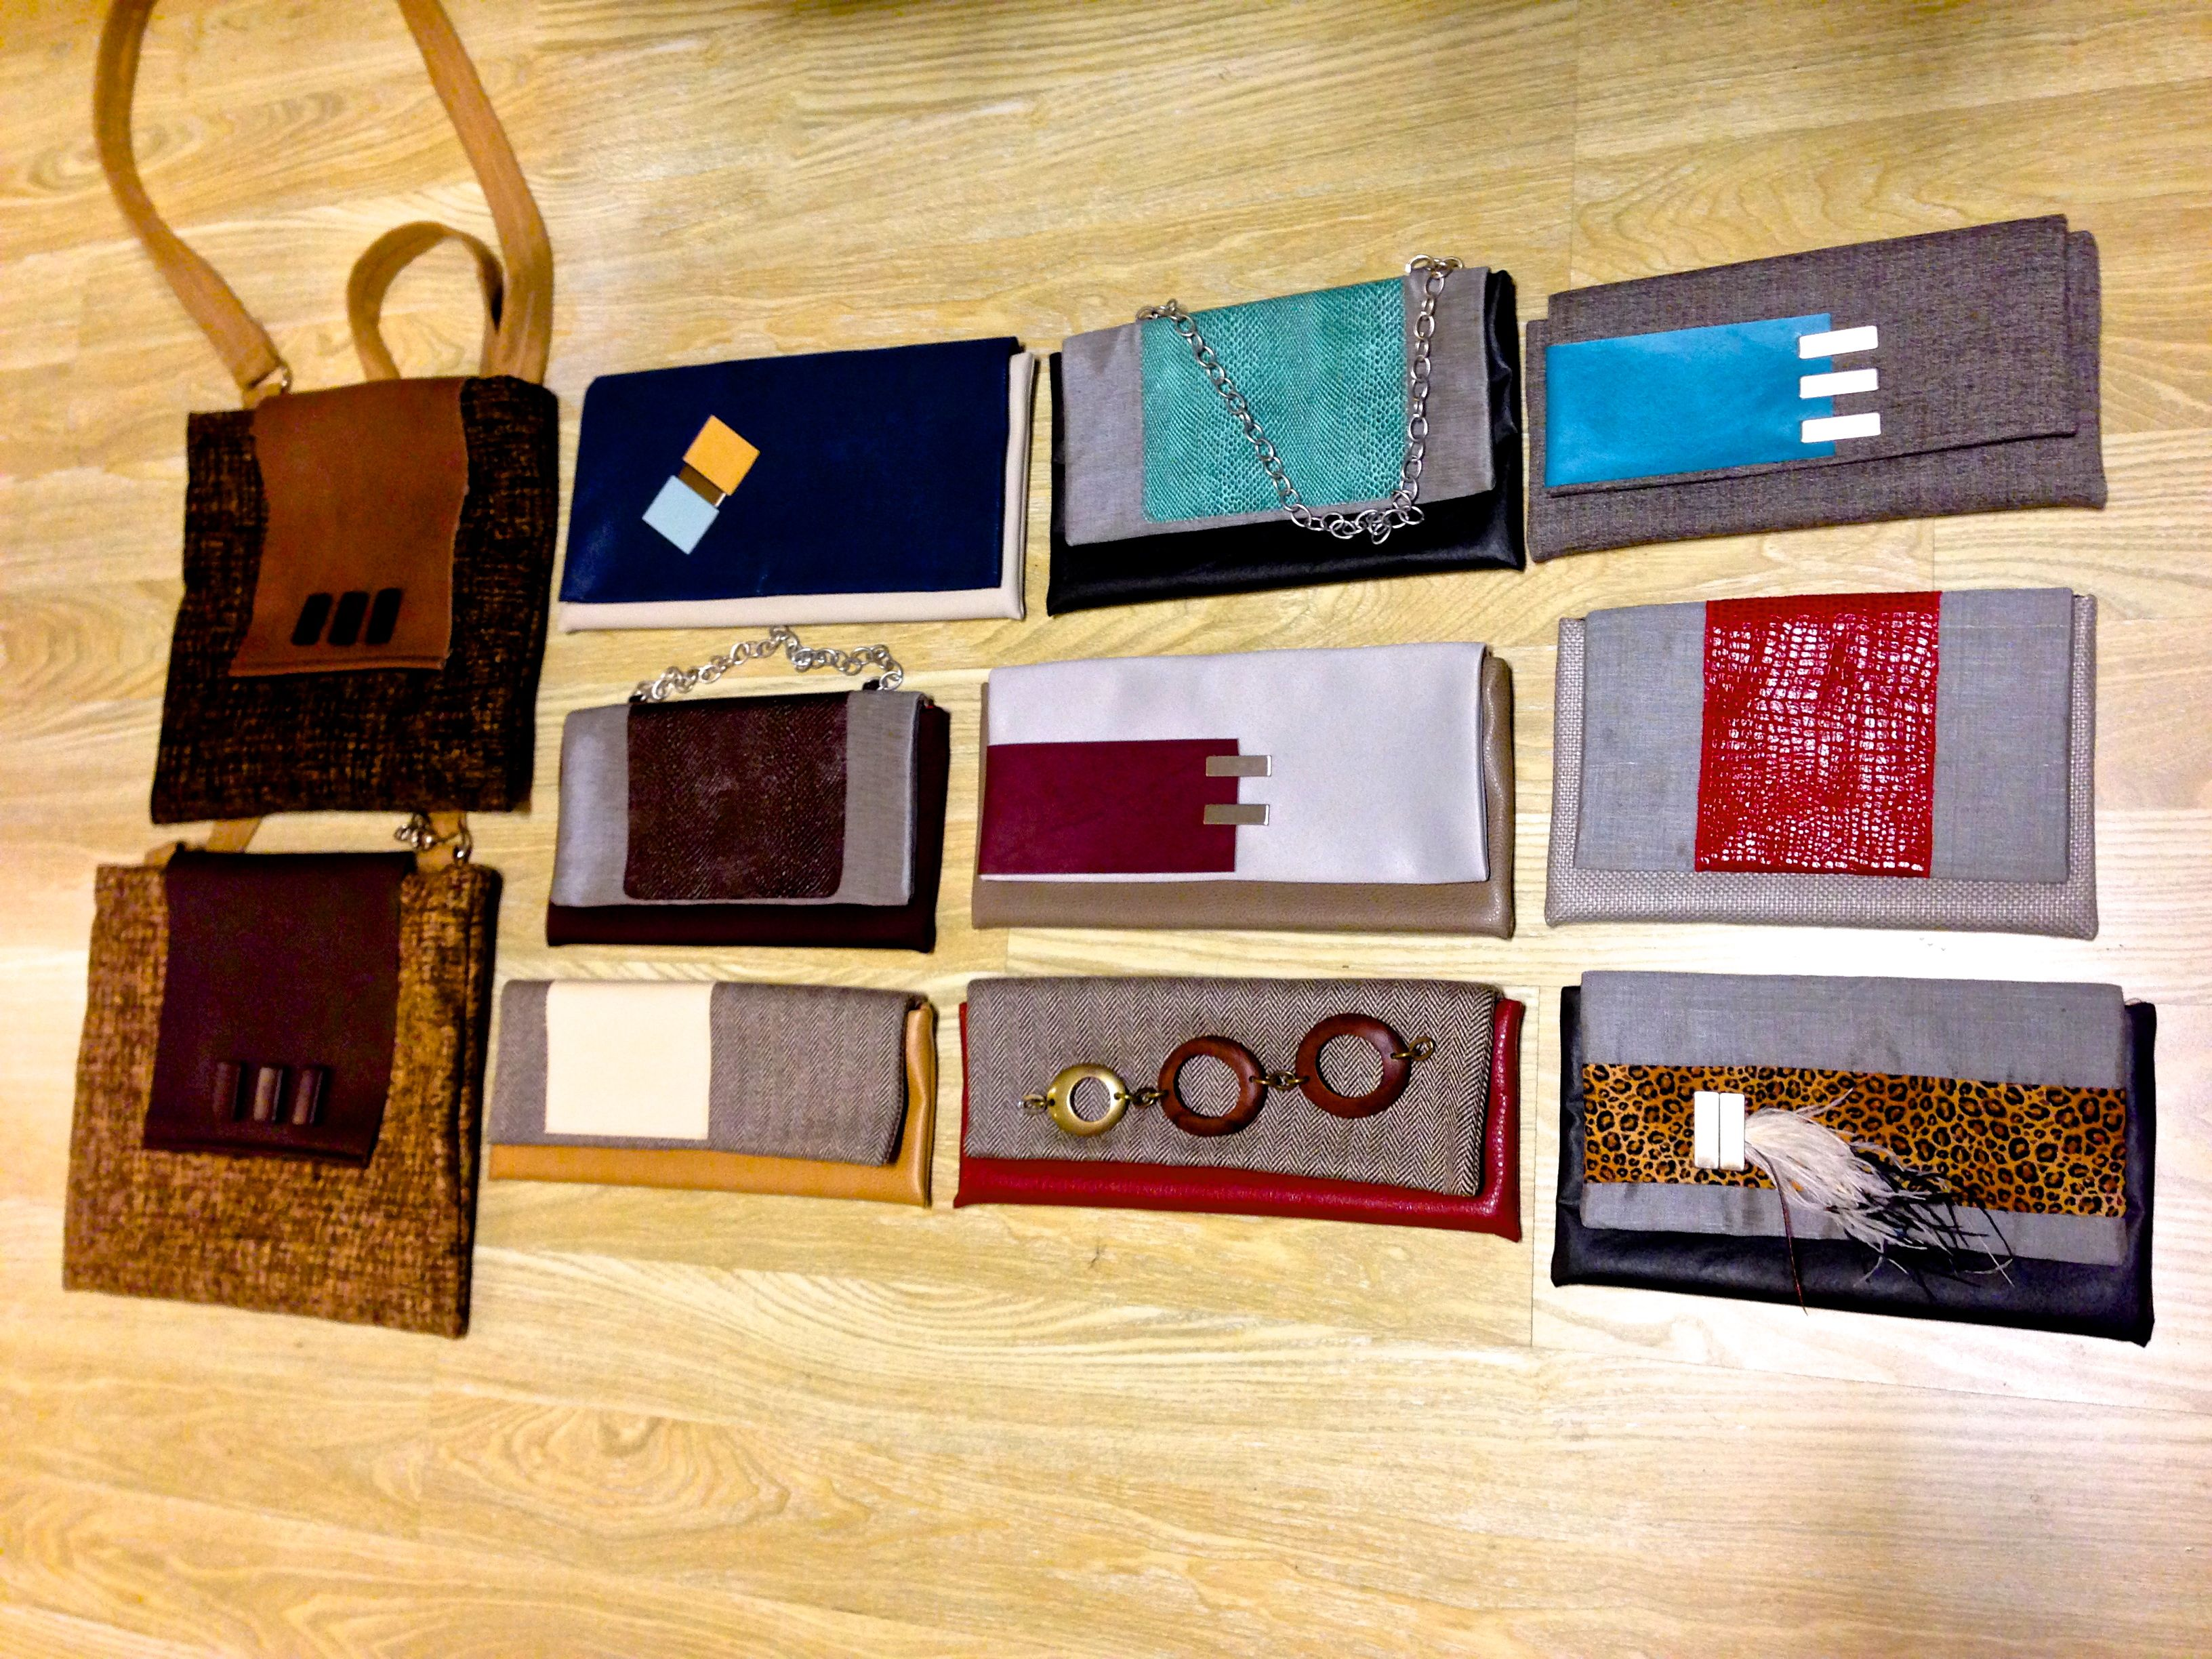 Available at RAG SF - Residents Apparel Gallery.  541 Octavia St, San Francisco, California 94102.  **All thse clutches and bags can be shipped to you**  Call: (415) 621-7718